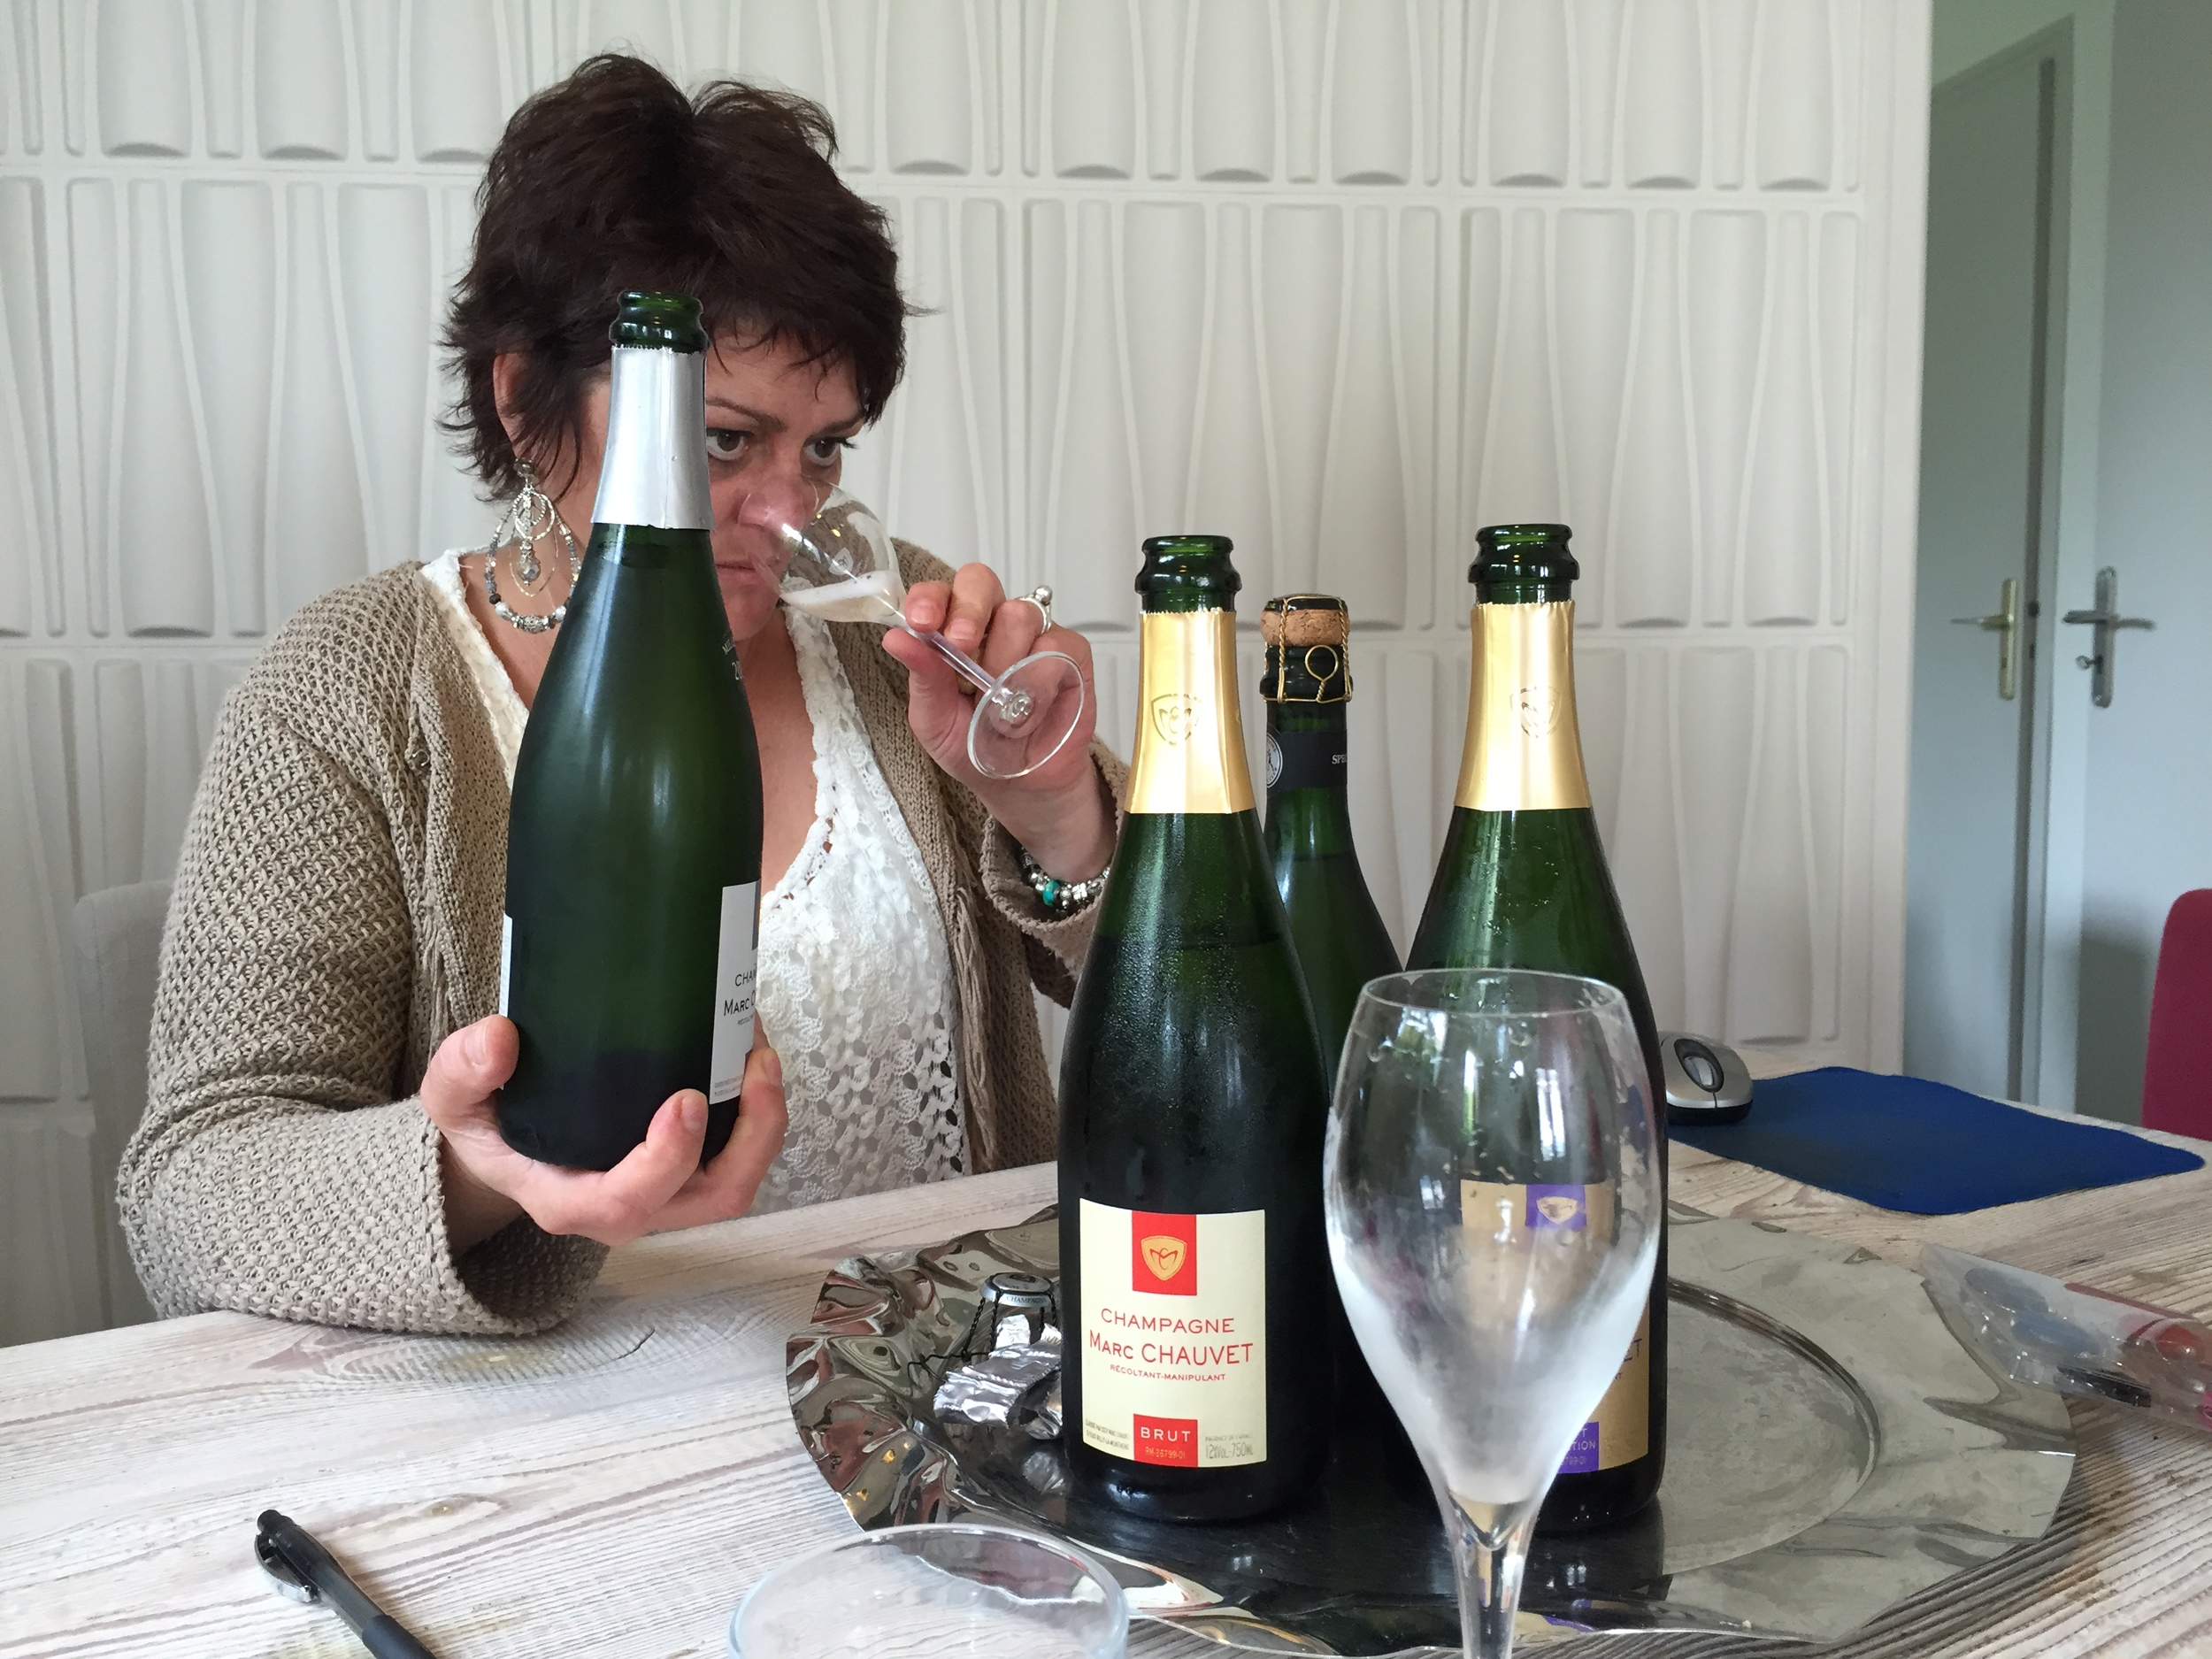 Tasting with Clotilde Chauvet in Rilly-la-Montagne...